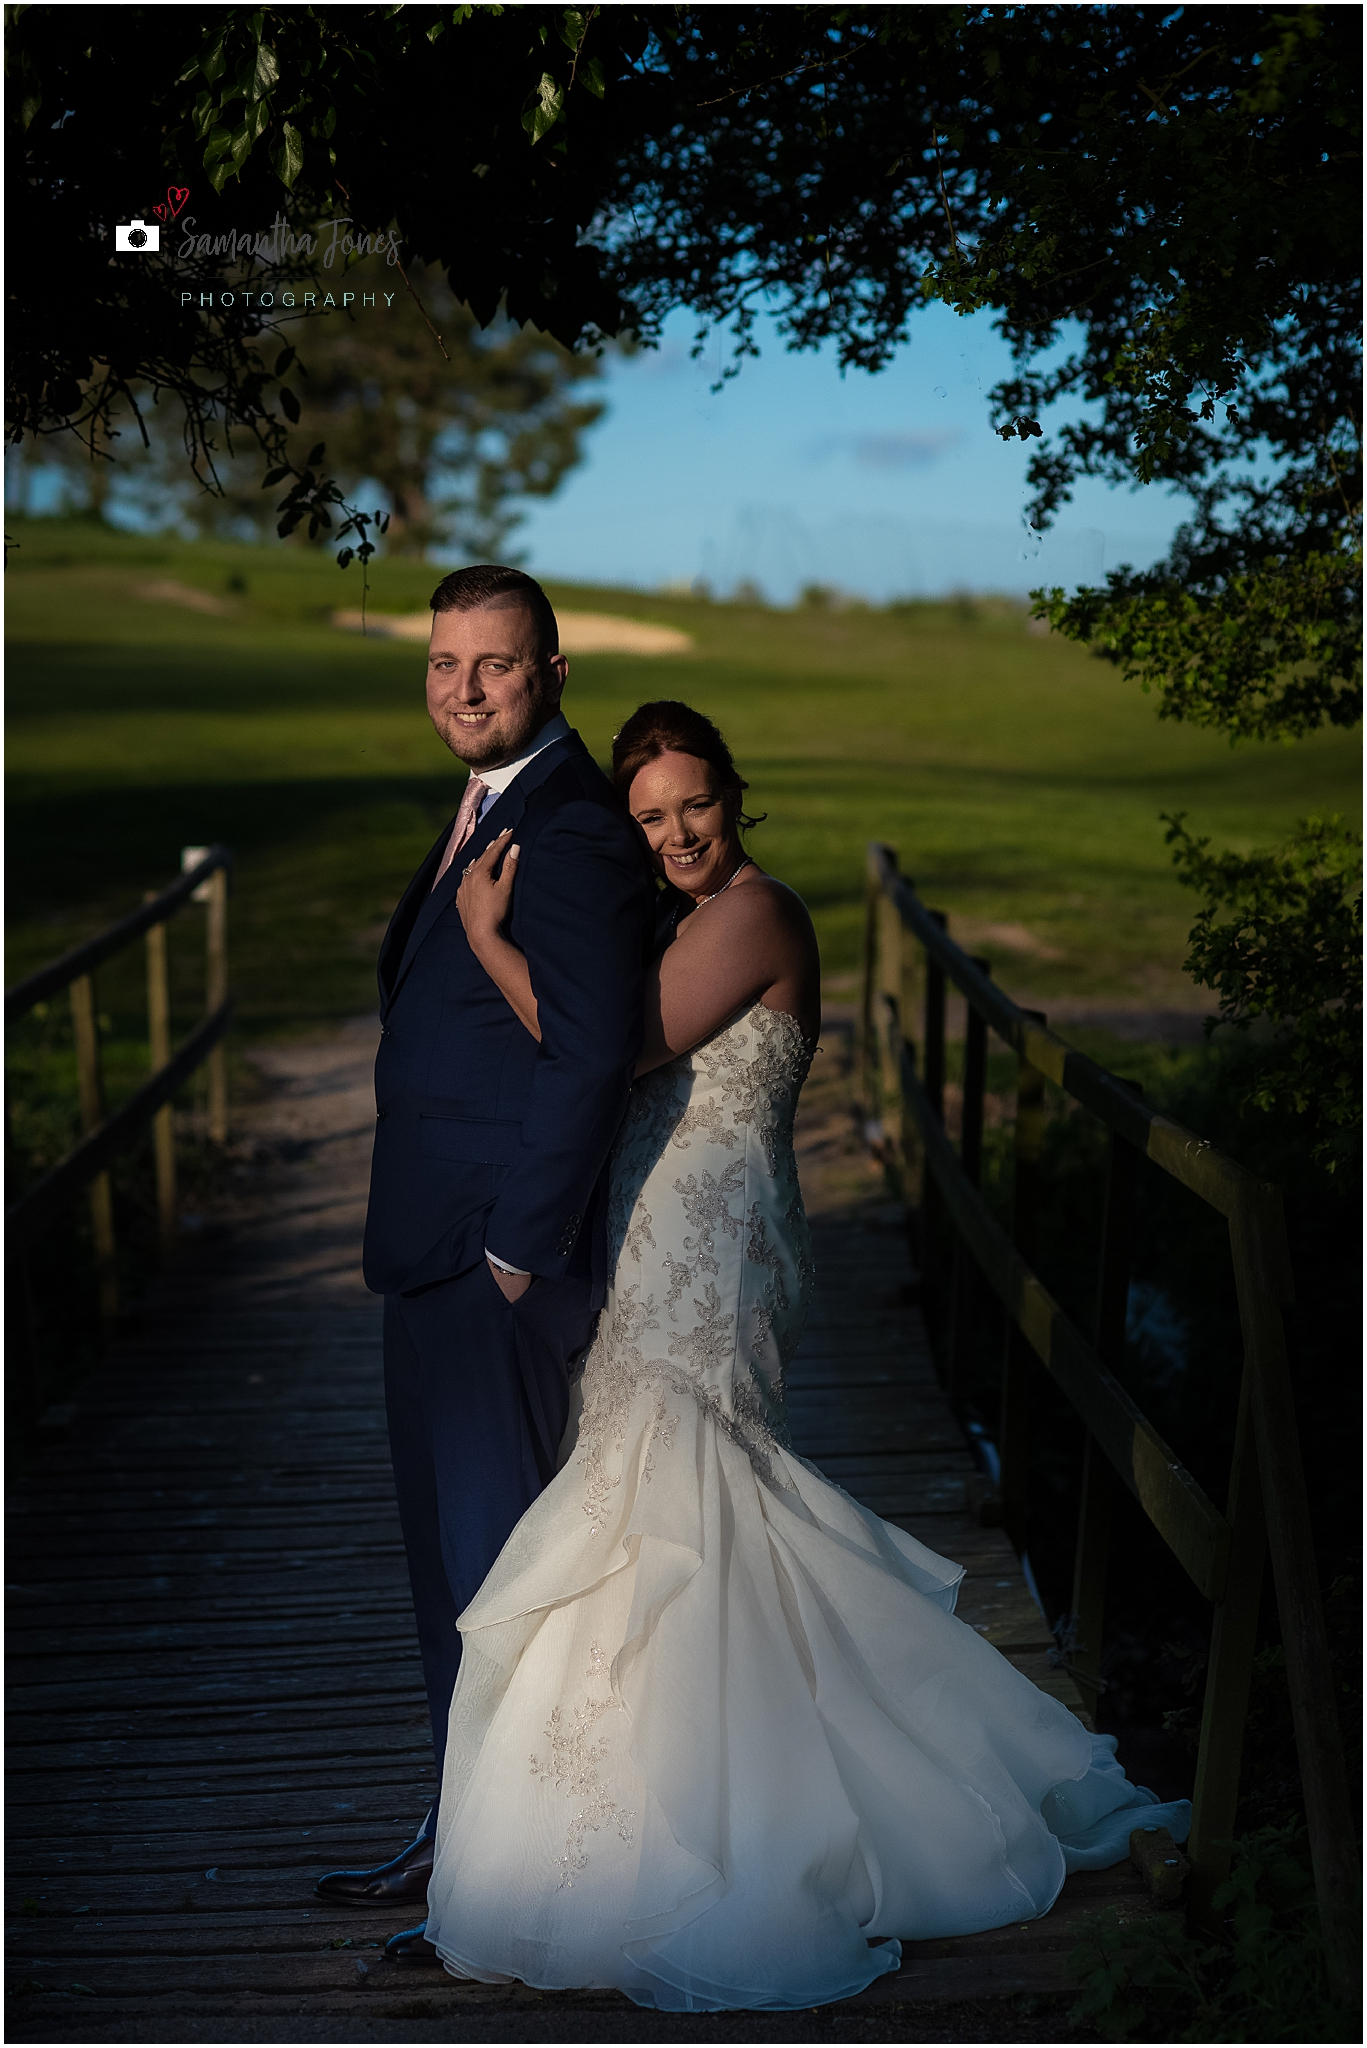 Emma and Aaron twilight wedding at Stonelees bride and groom portraits